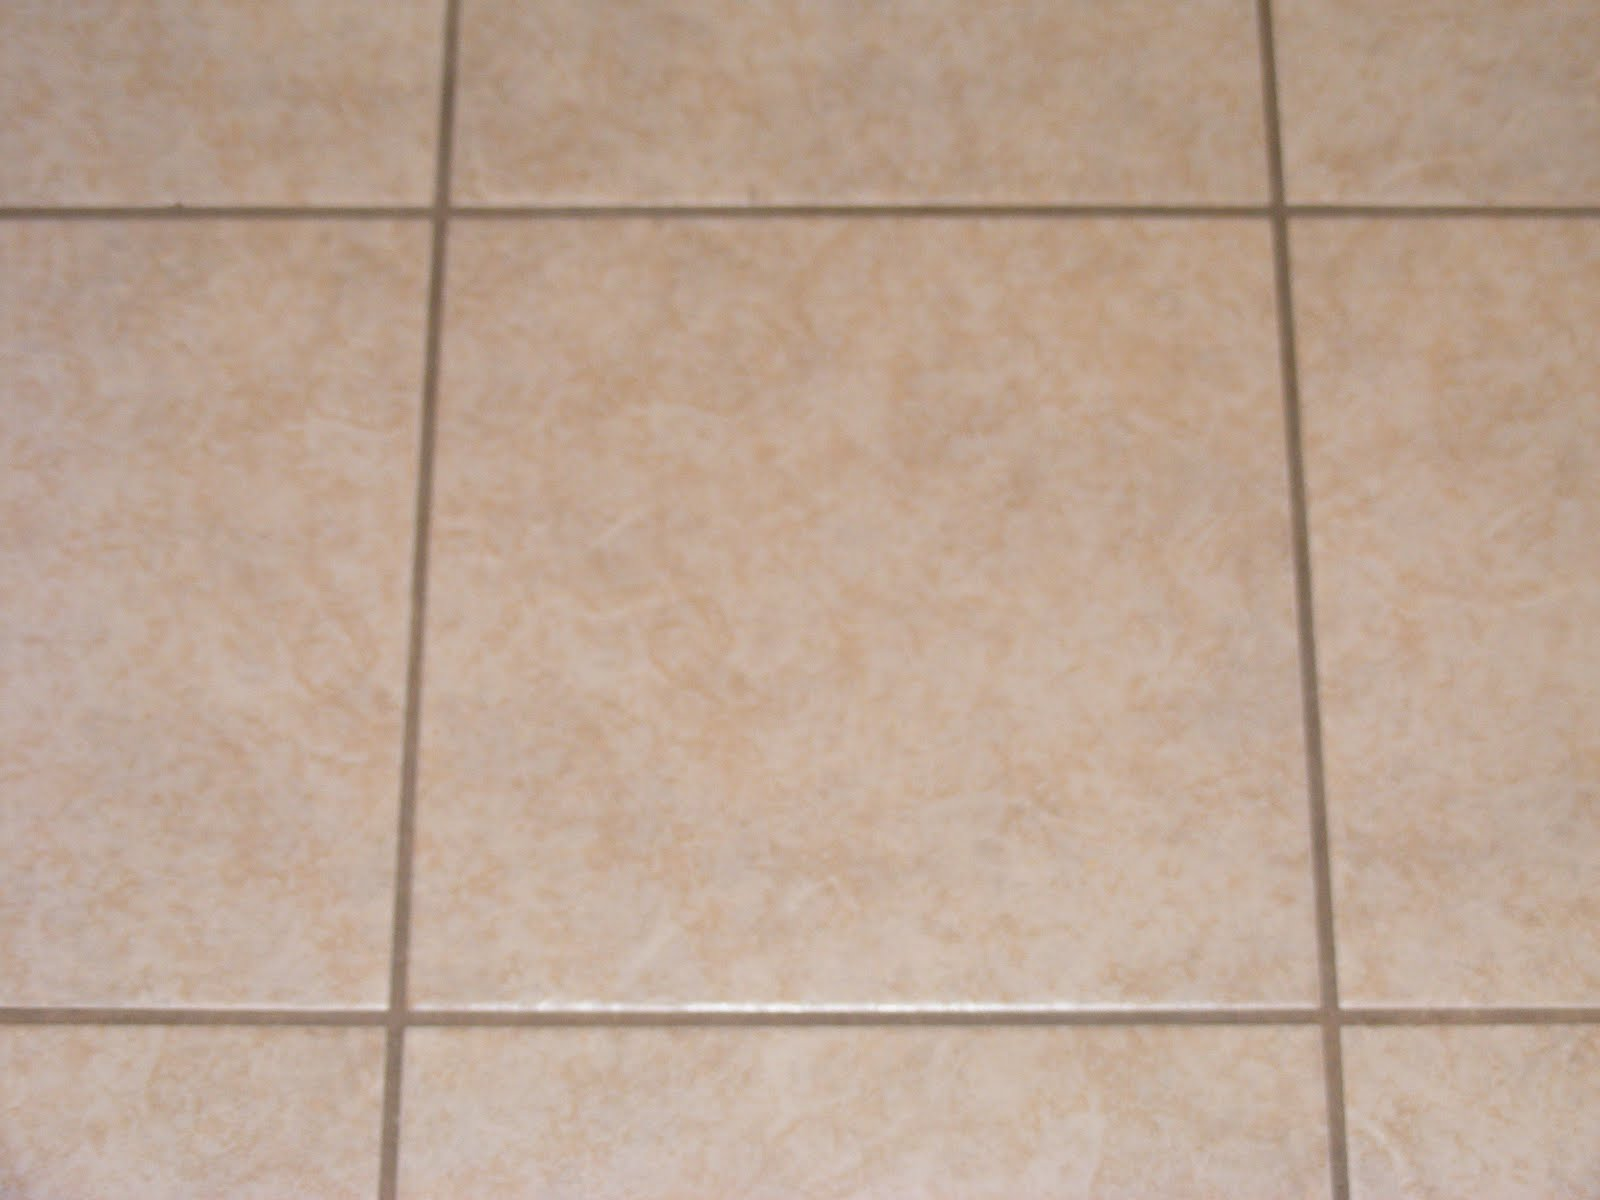 Grout cleaner amazing grout cleaner dailygadgetfo Images